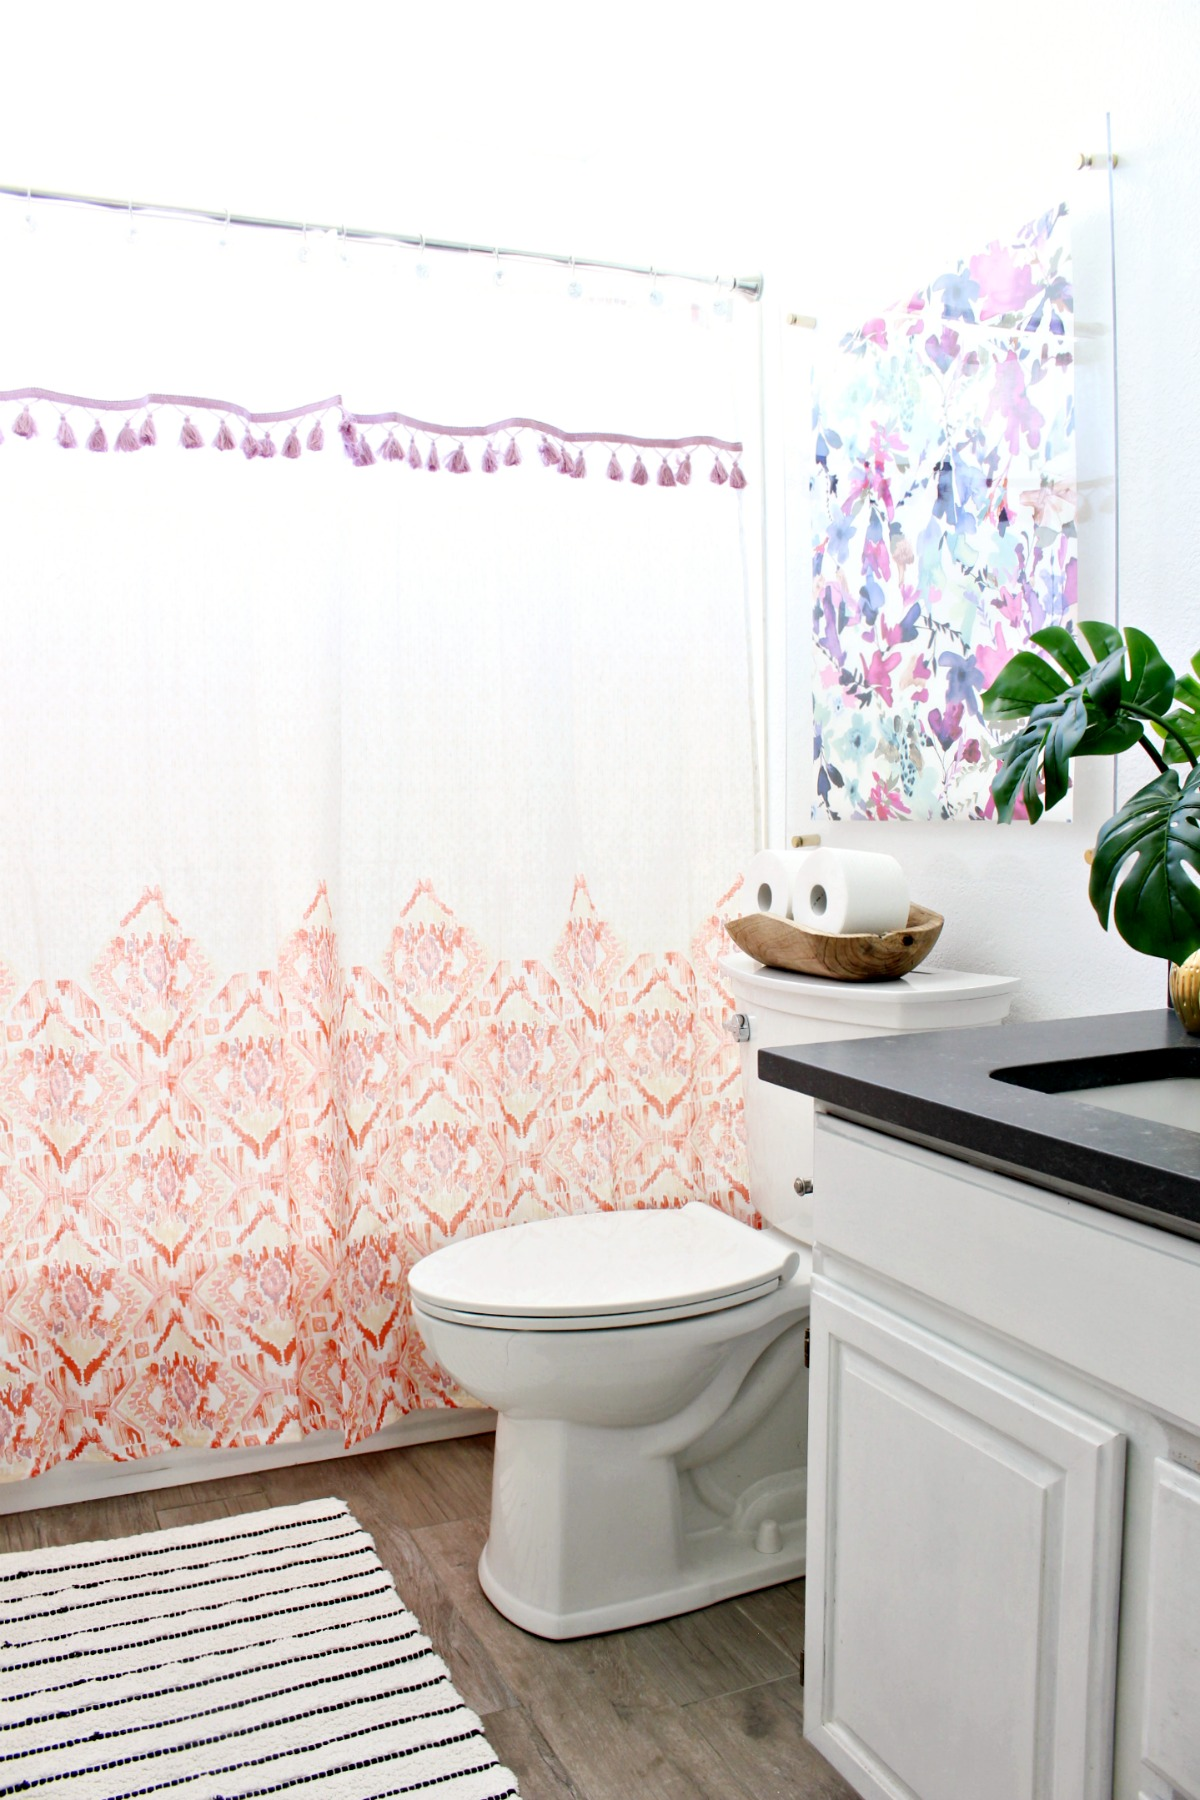 Guest Bathroom Ideas How To Clean And Prepare For Guests